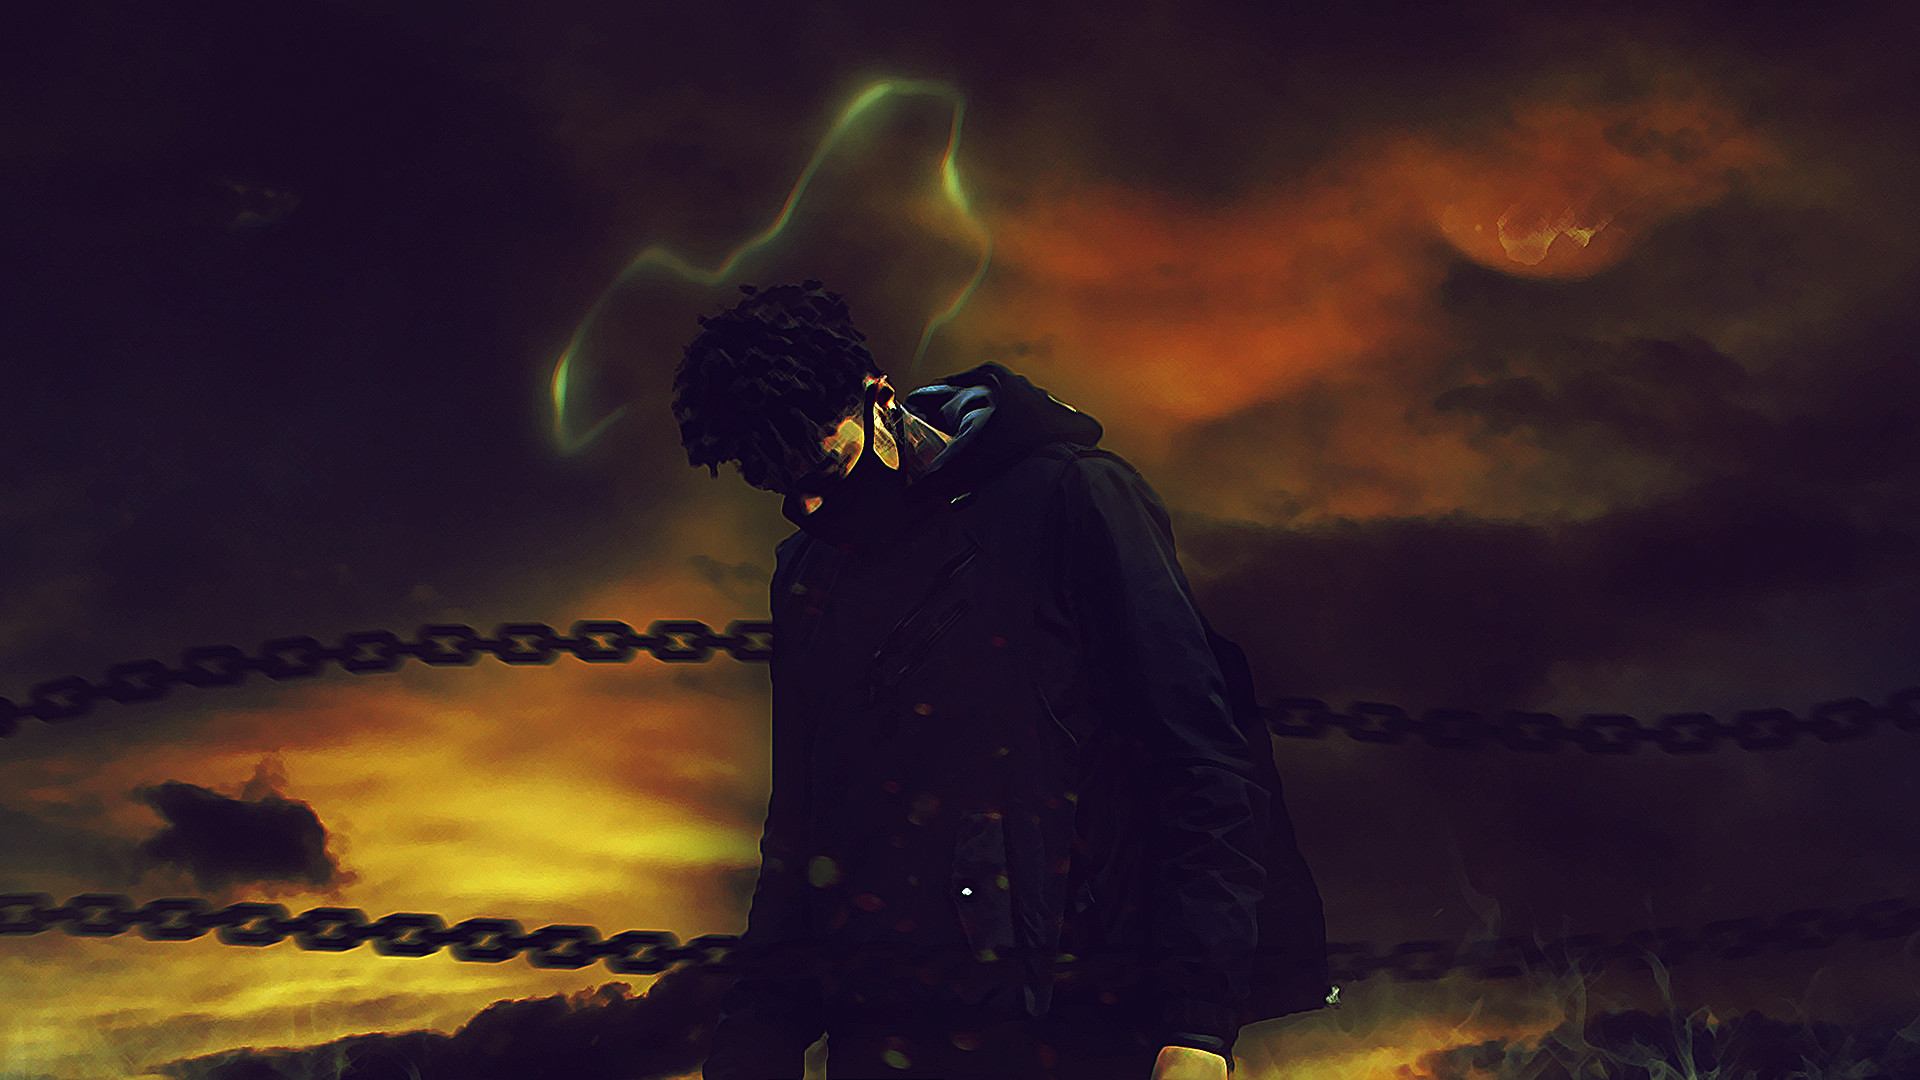 Res: 1920x1080, SCARLXRD Chaos Wallpaper by Derprived SCARLXRD Chaos Wallpaper by Derprived